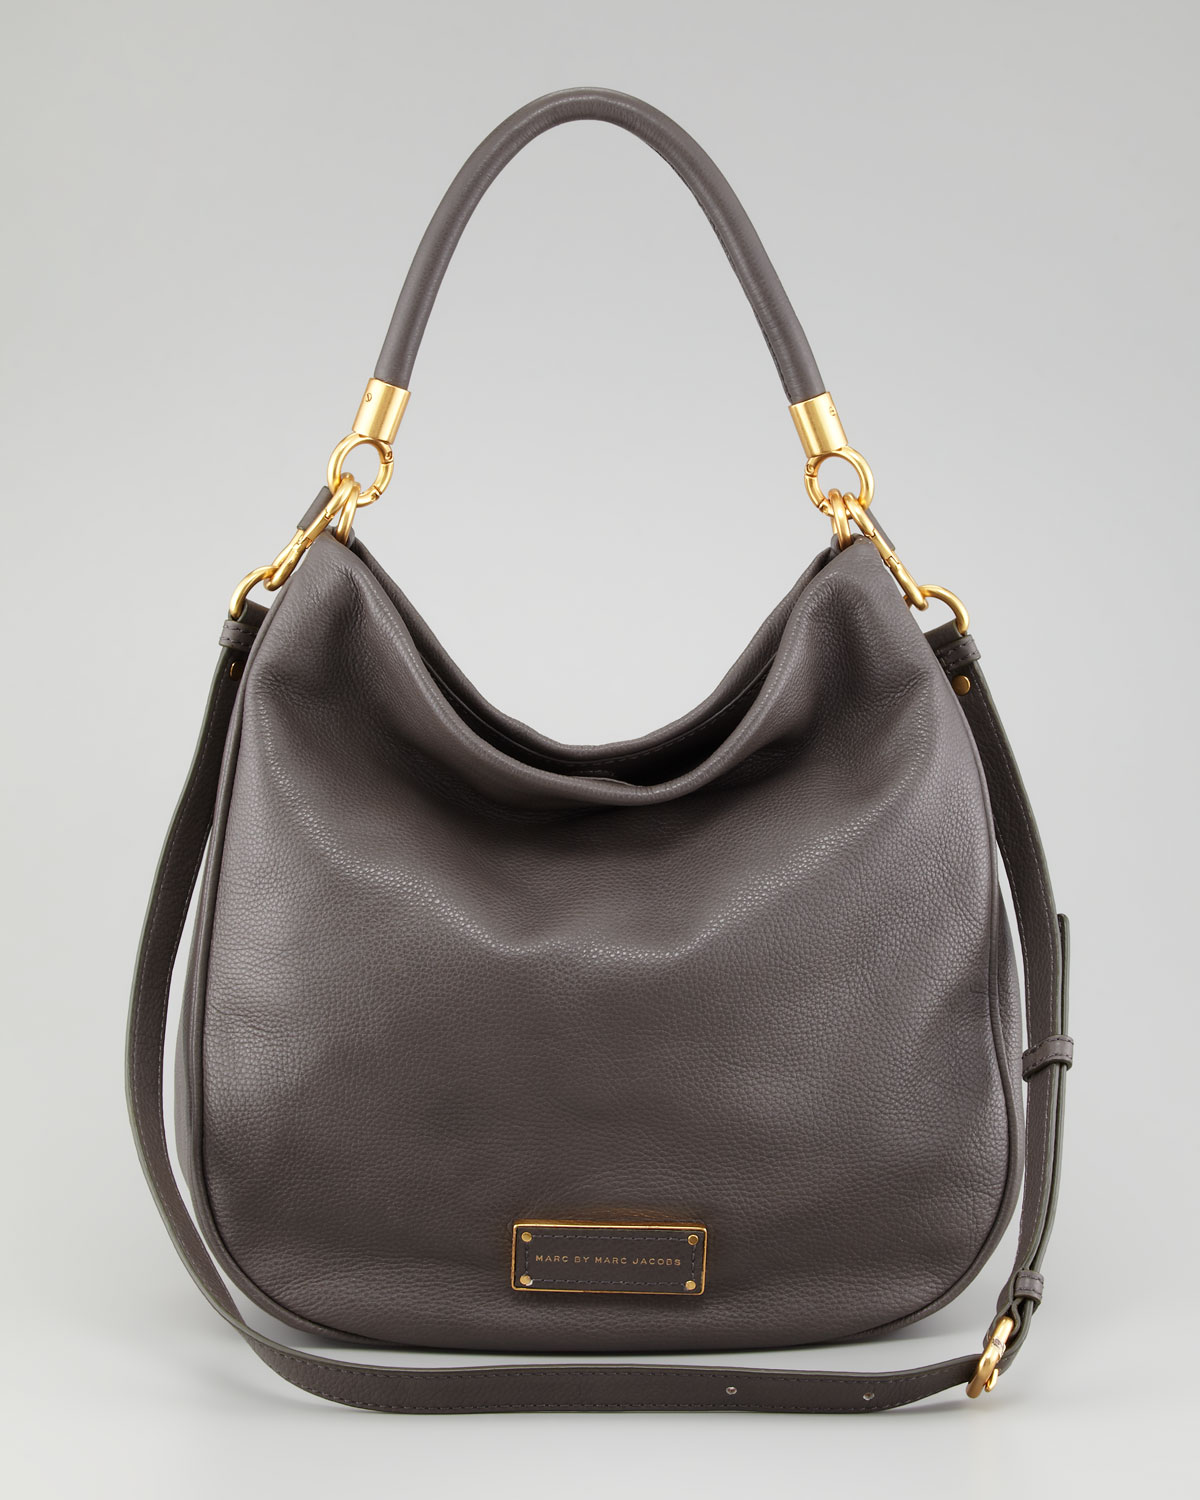 marc by marc jacobs too hot to handle hobo bag in gray lyst. Black Bedroom Furniture Sets. Home Design Ideas